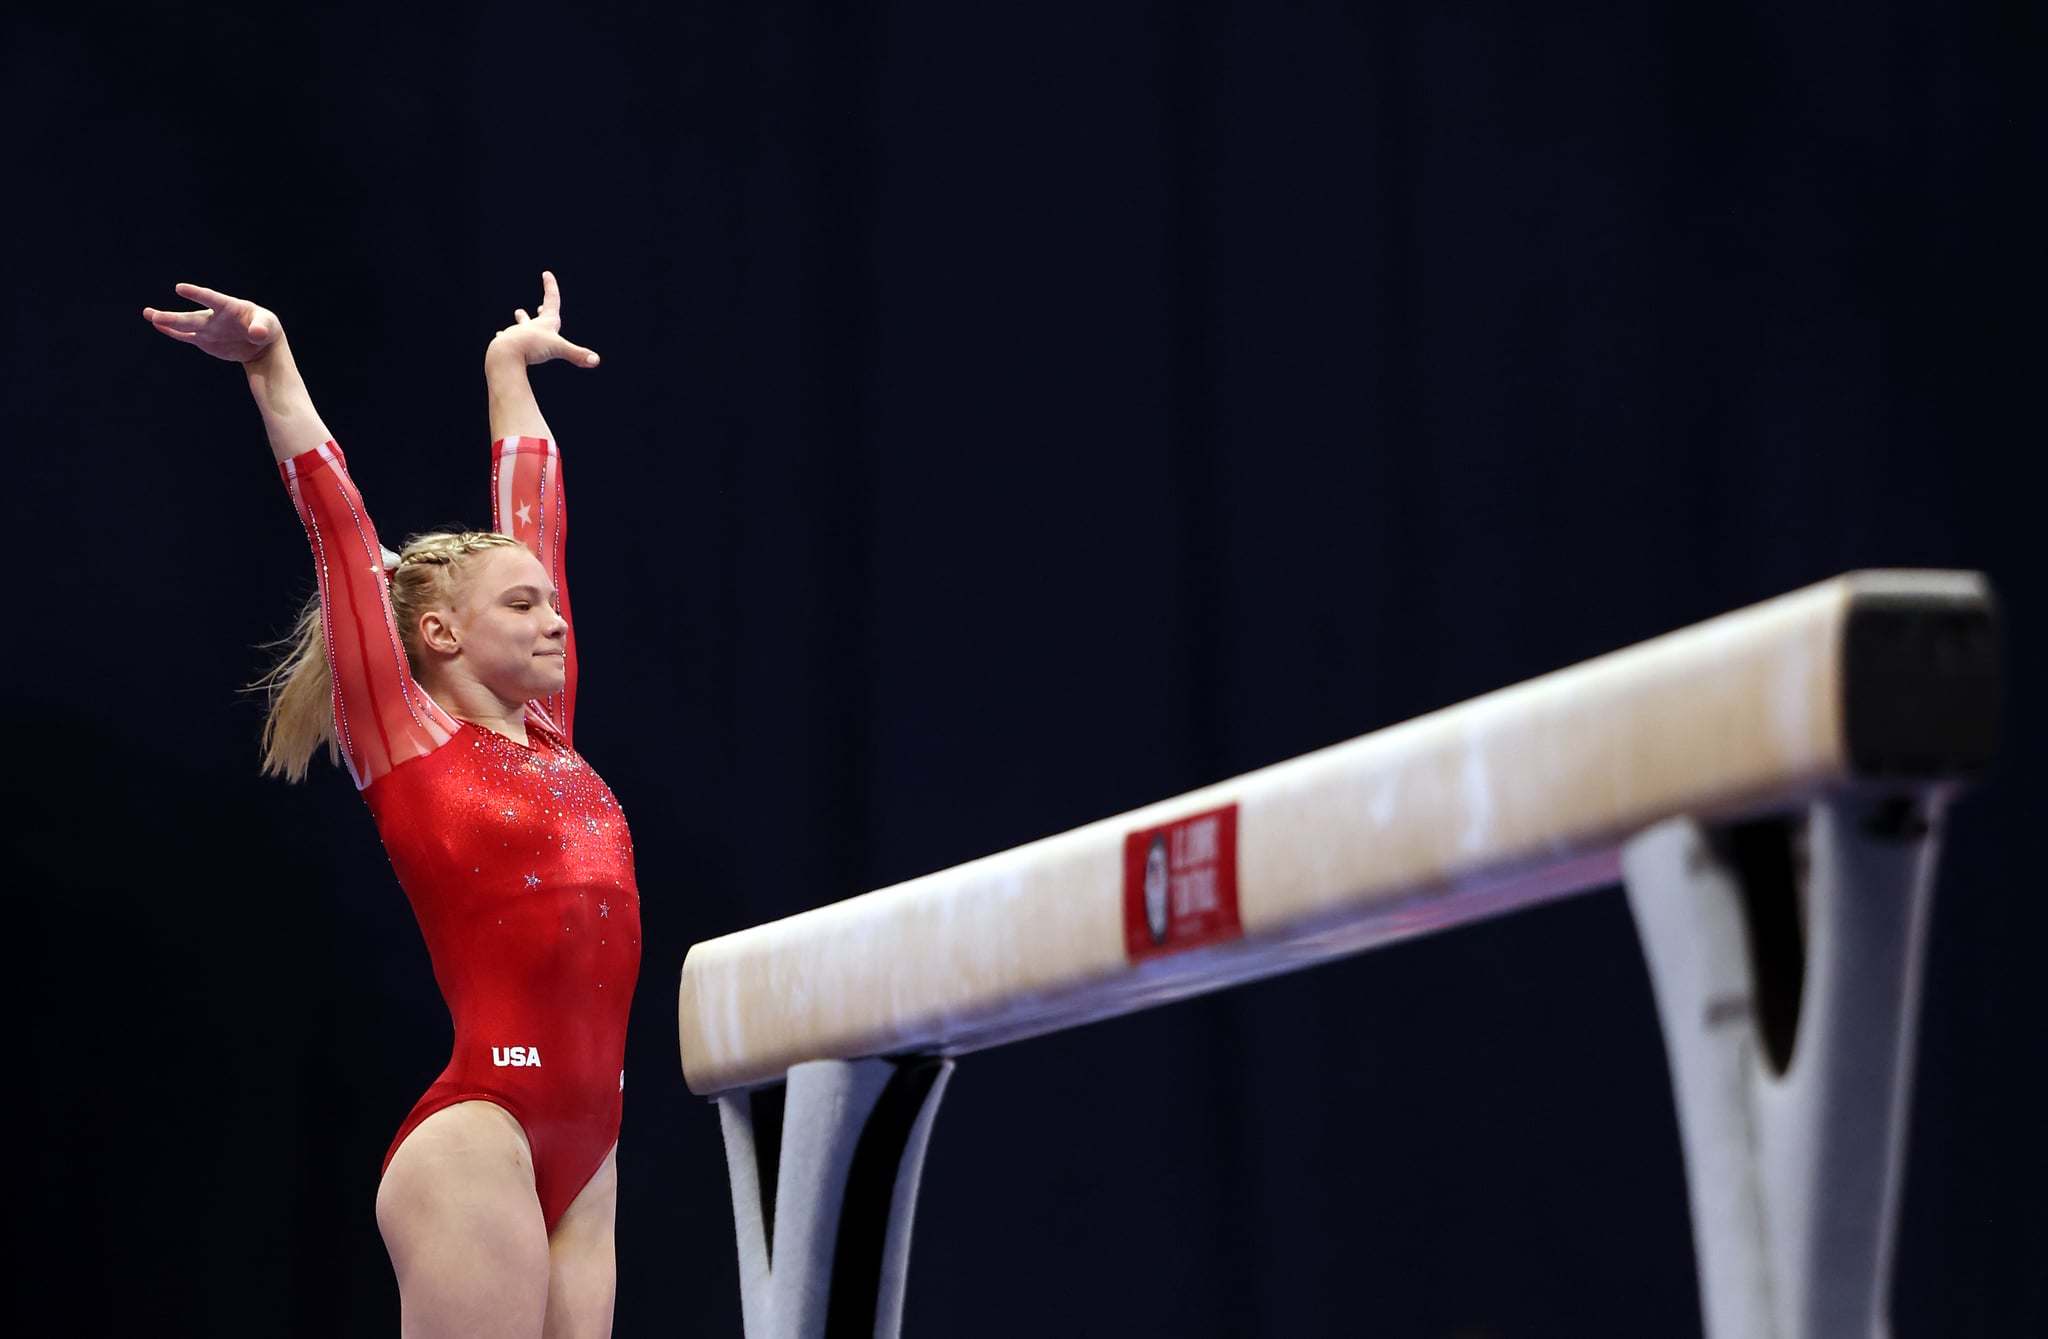 ST LOUIS, MISSOURI - JUNE 25:  Jade Carey smiles after landing her dismount off the balance beam during the Women's competition of the 2021 U.S. Gymnastics Olympic Trials at America's Center on June 25, 2021 in St Louis, Missouri. (Photo by Jamie Squire/Getty Images)